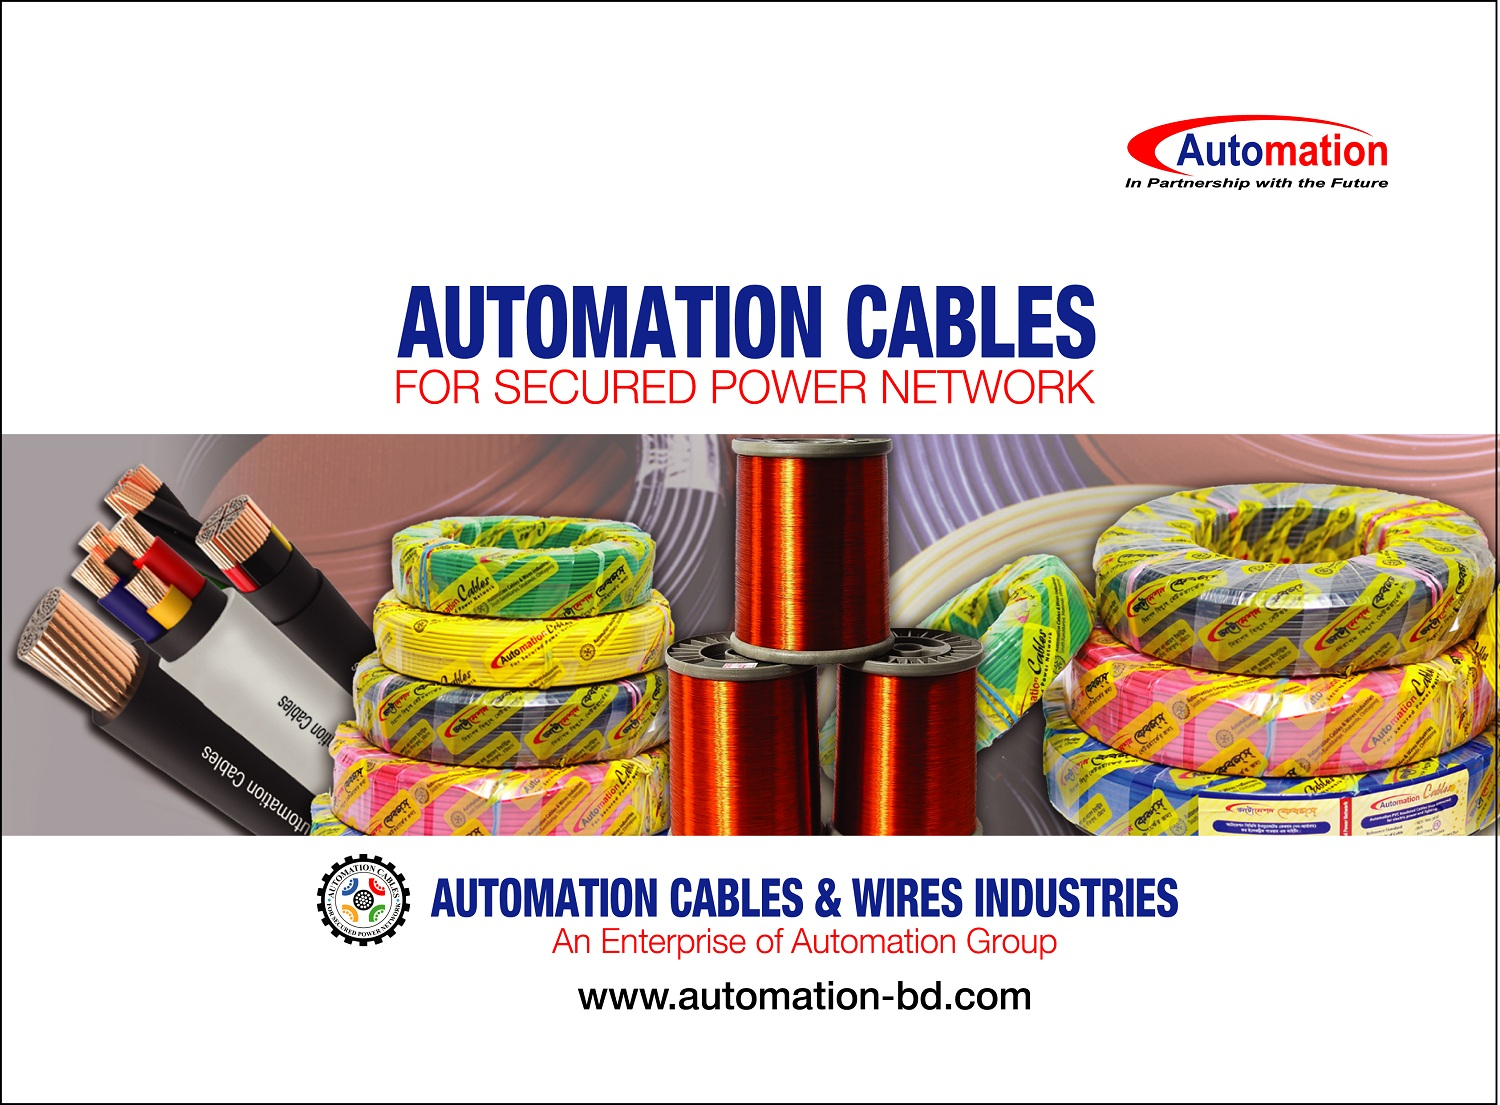 Automation Cable Brochure